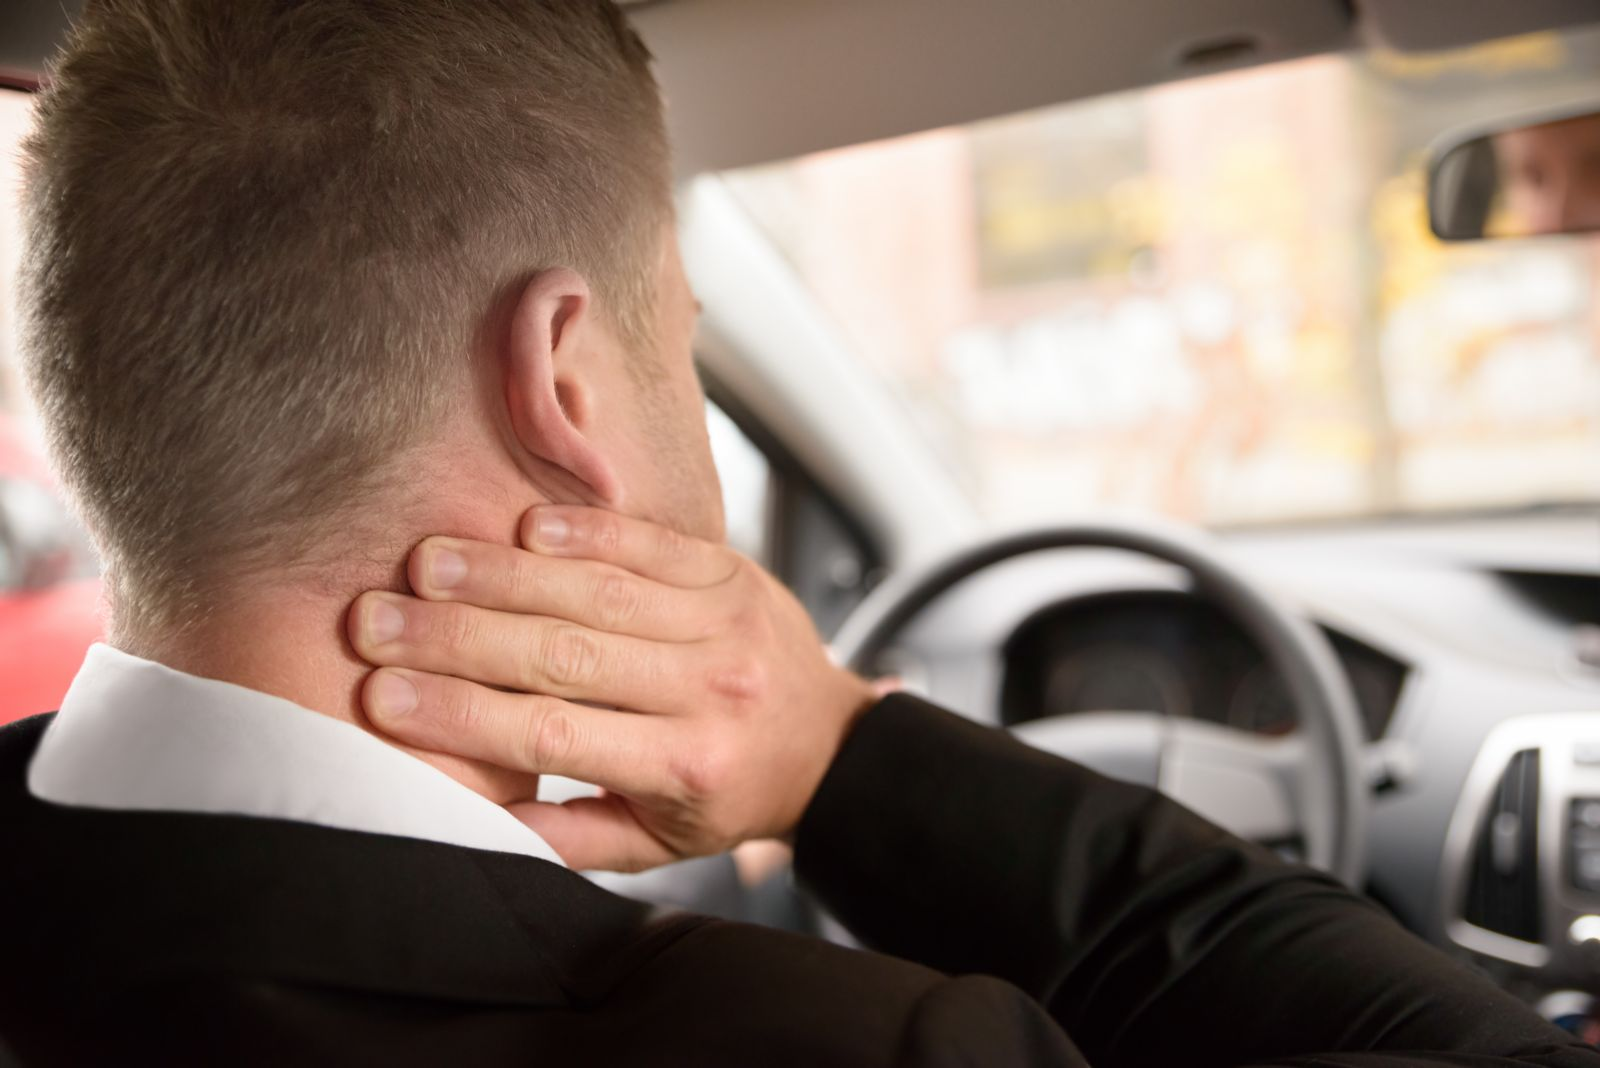 Man Holding Neck While Driving